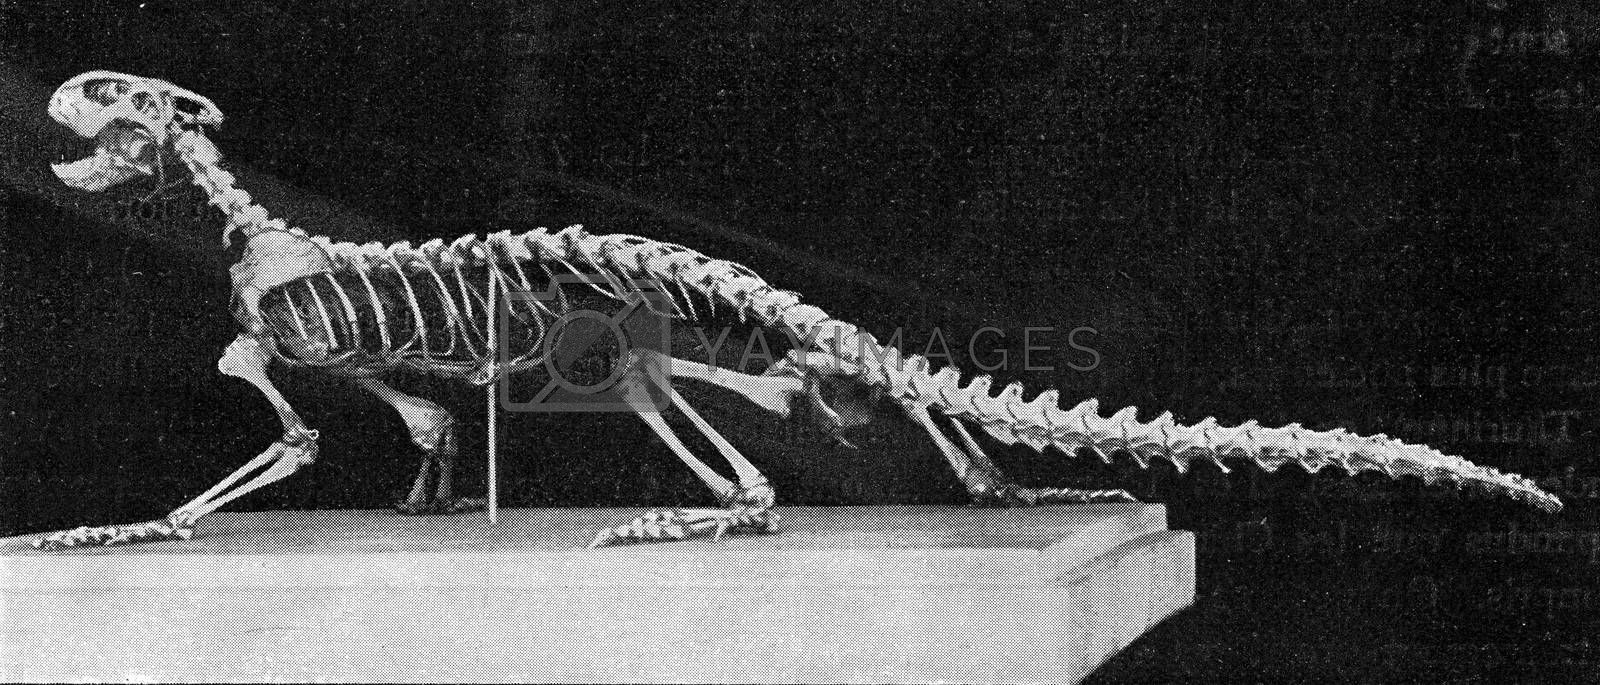 Skeleton of a modern lizard, vintage engraved illustration. From the Universe and Humanity, 1910.